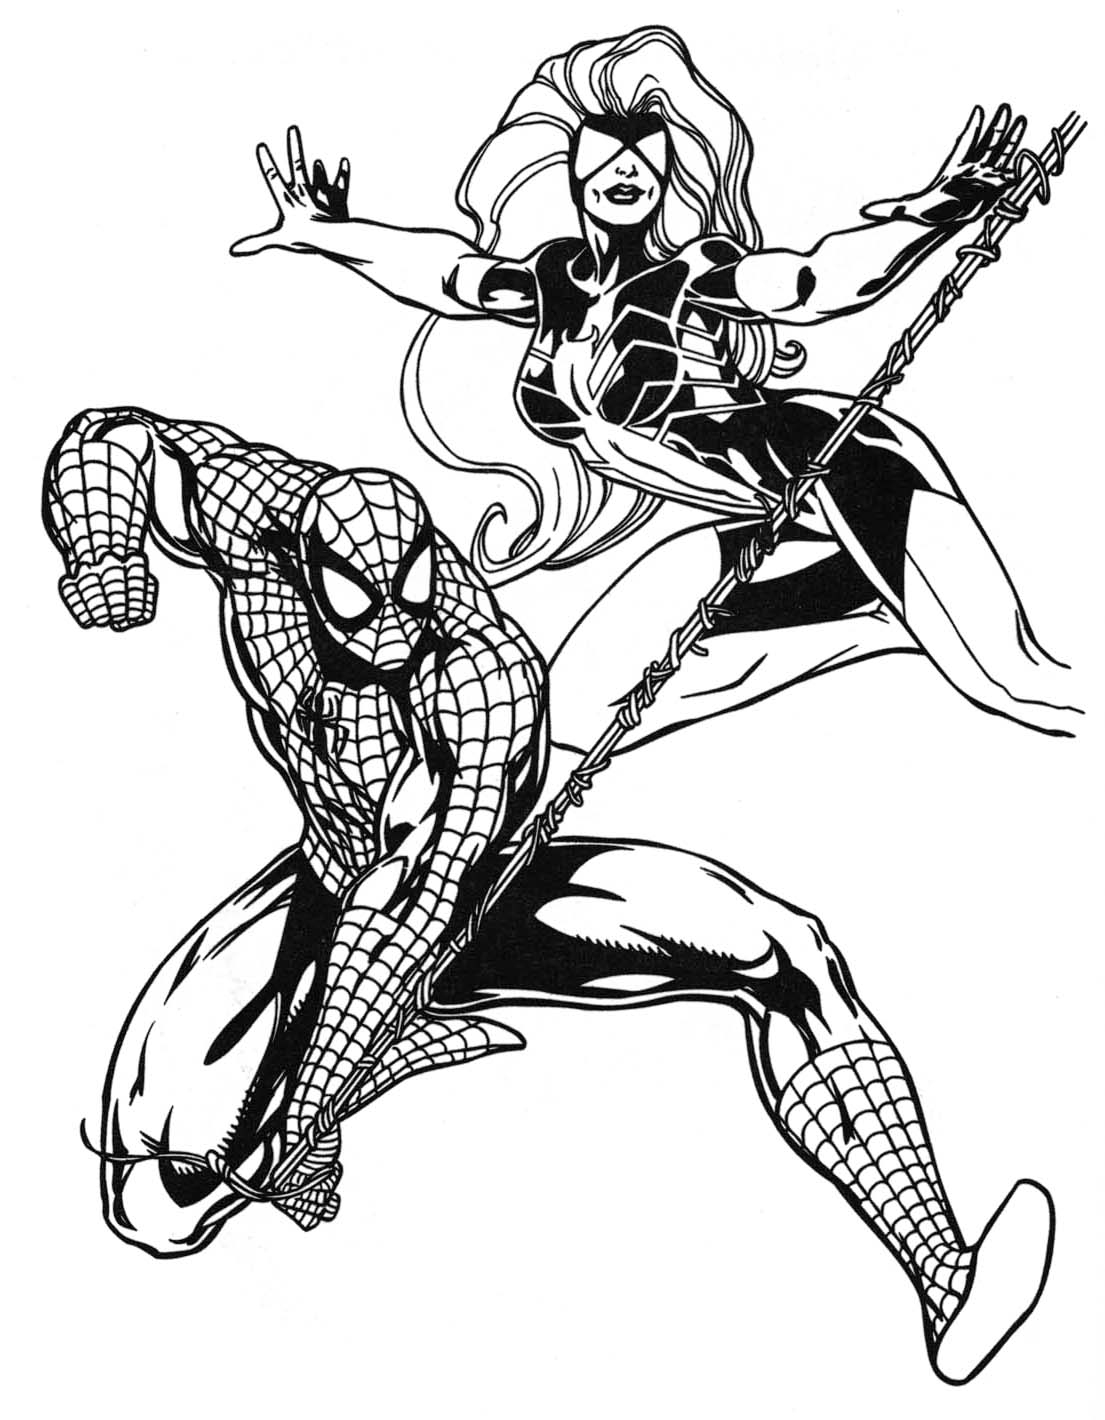 marvel colouring sheets cute avengers coloring pages png download marvel marvel colouring sheets